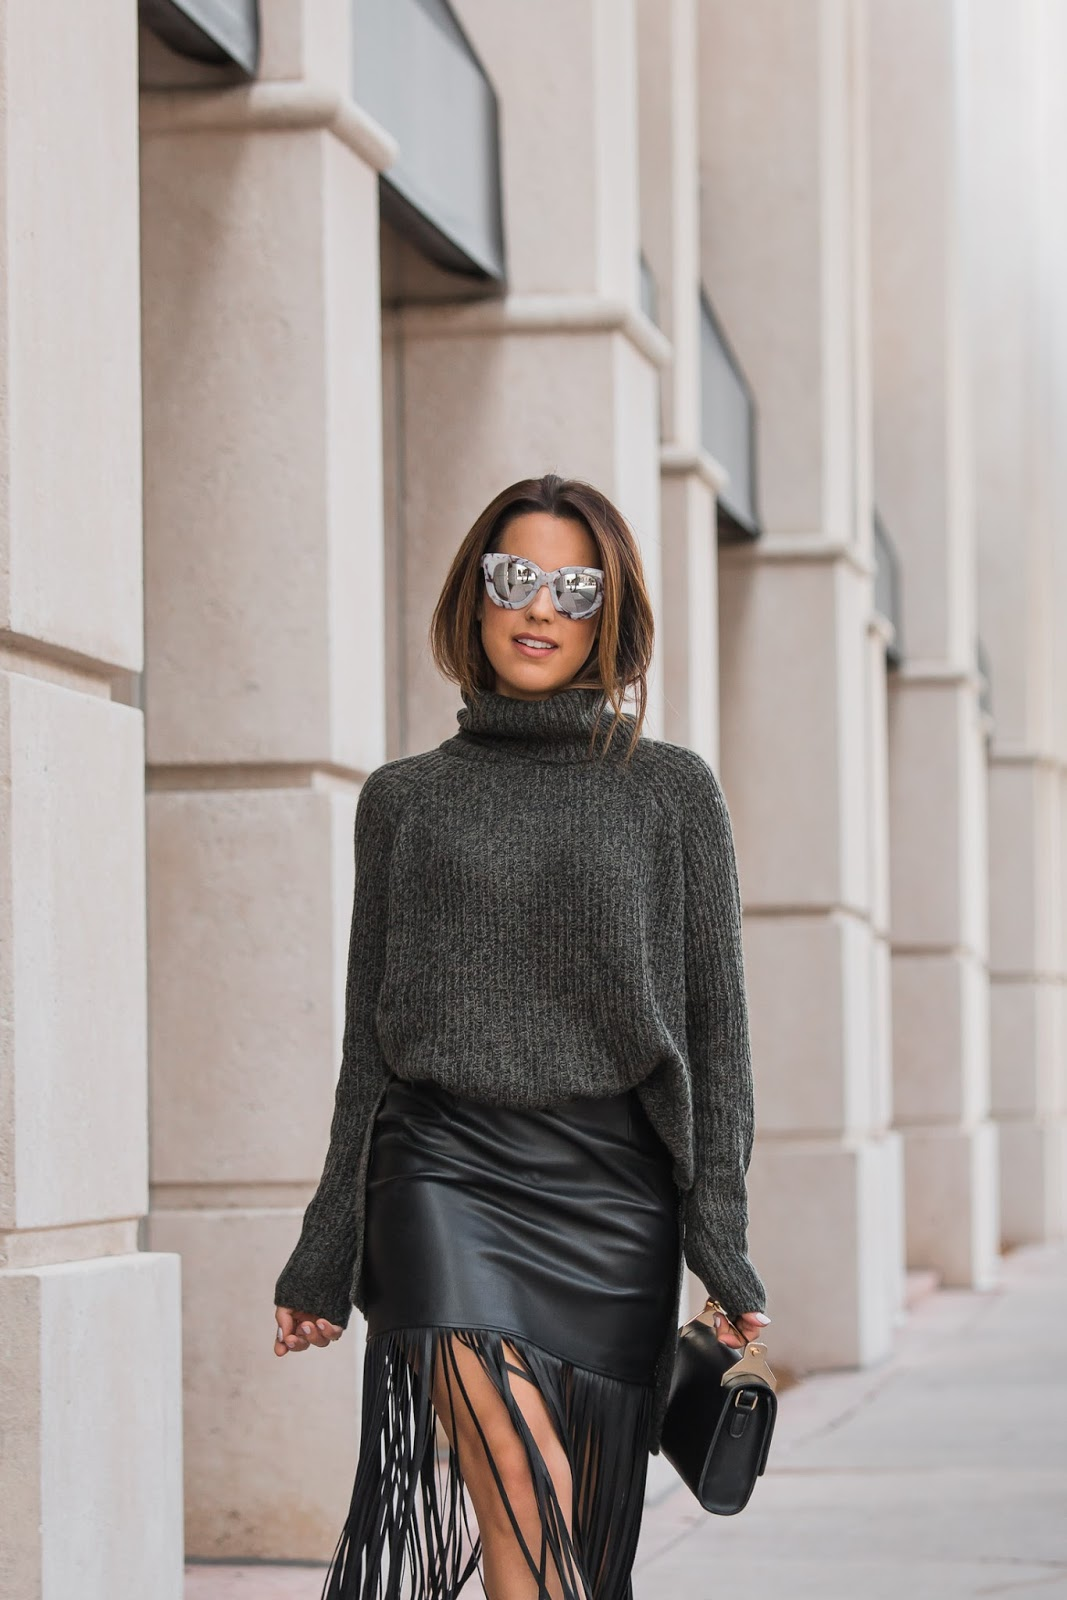 Cozy Sweater & Leather Skirt | Kelly's Kloset by Kelly Saks